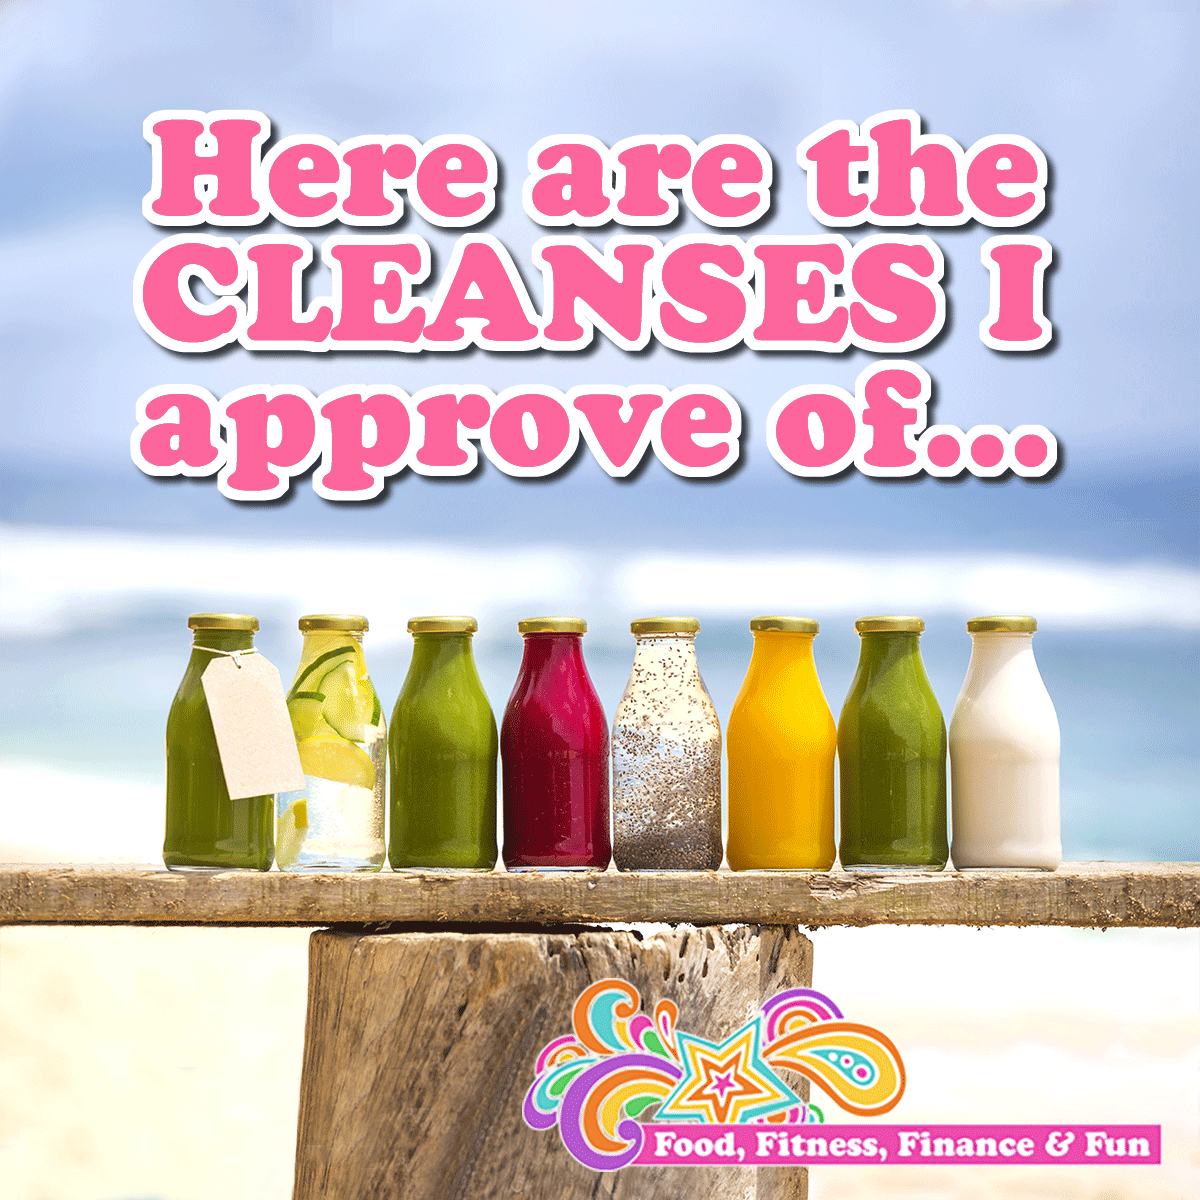 Here Are Cleanses I Approve Of